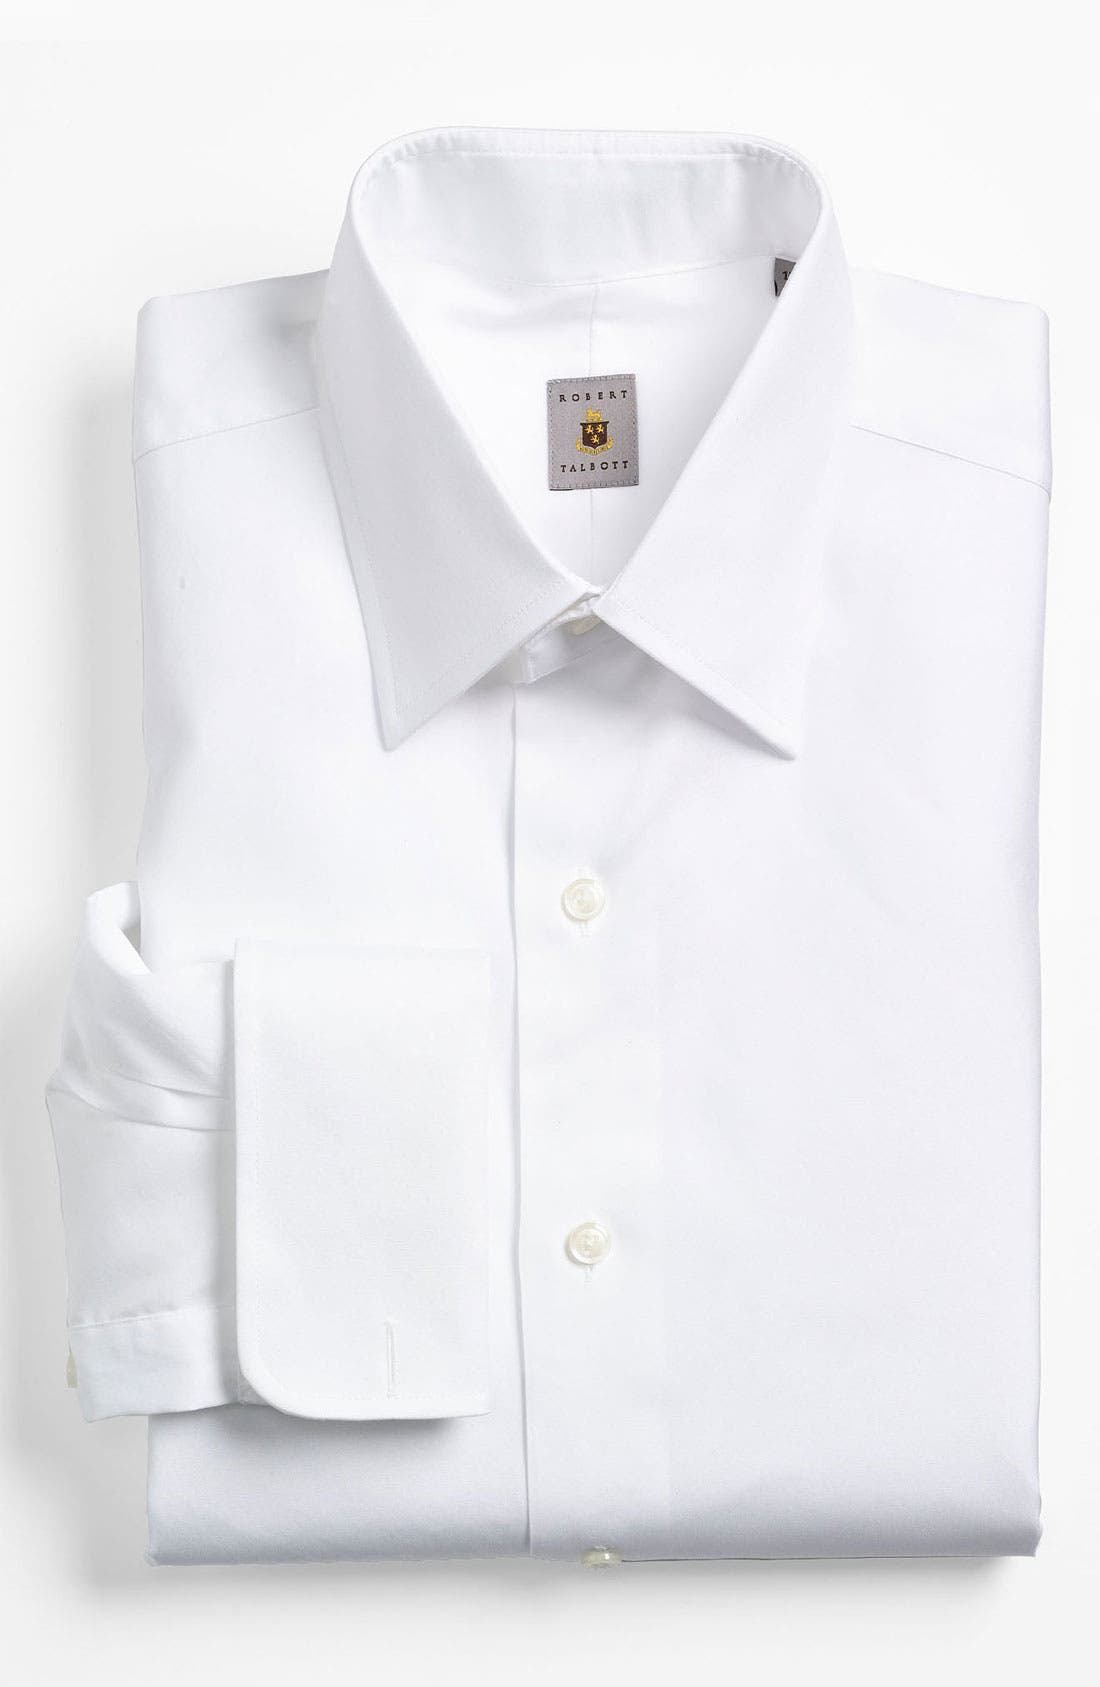 Main Image - Robert Talbott Regular Fit Tuxedo Shirt (Online Only)